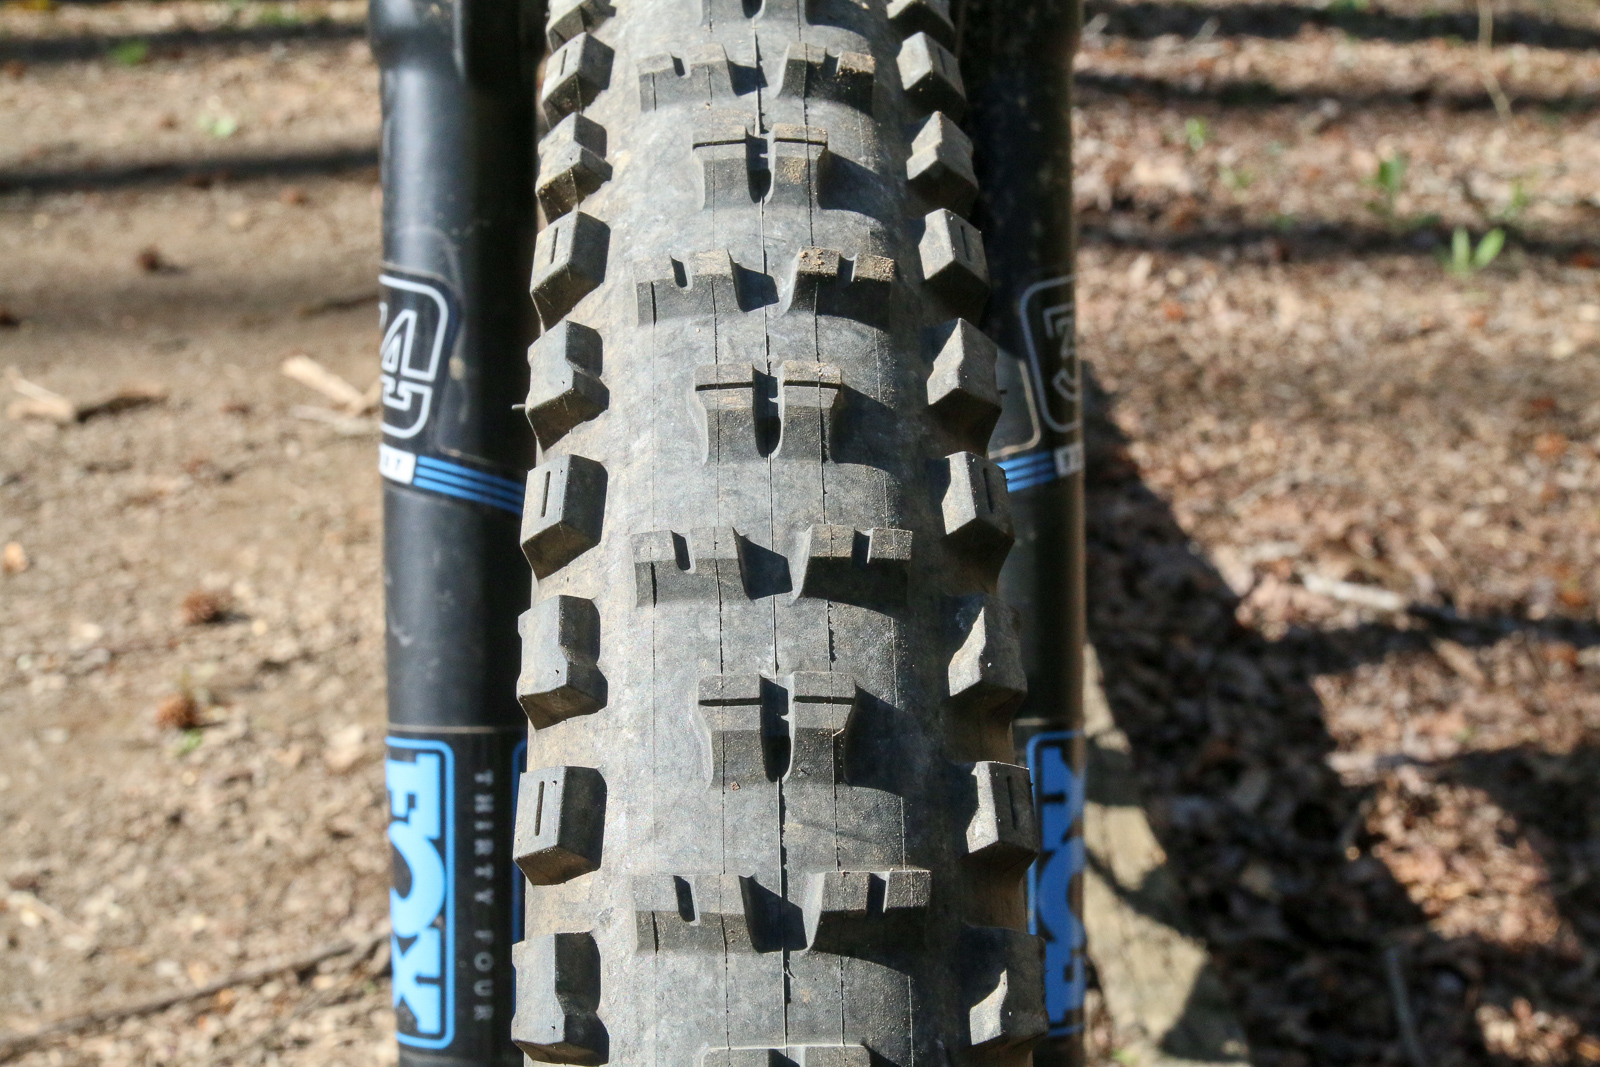 730908caced Maxxis Appalachian Summit – New tire testing at the Mulberry Gap Mountain  Bike Get-a-way